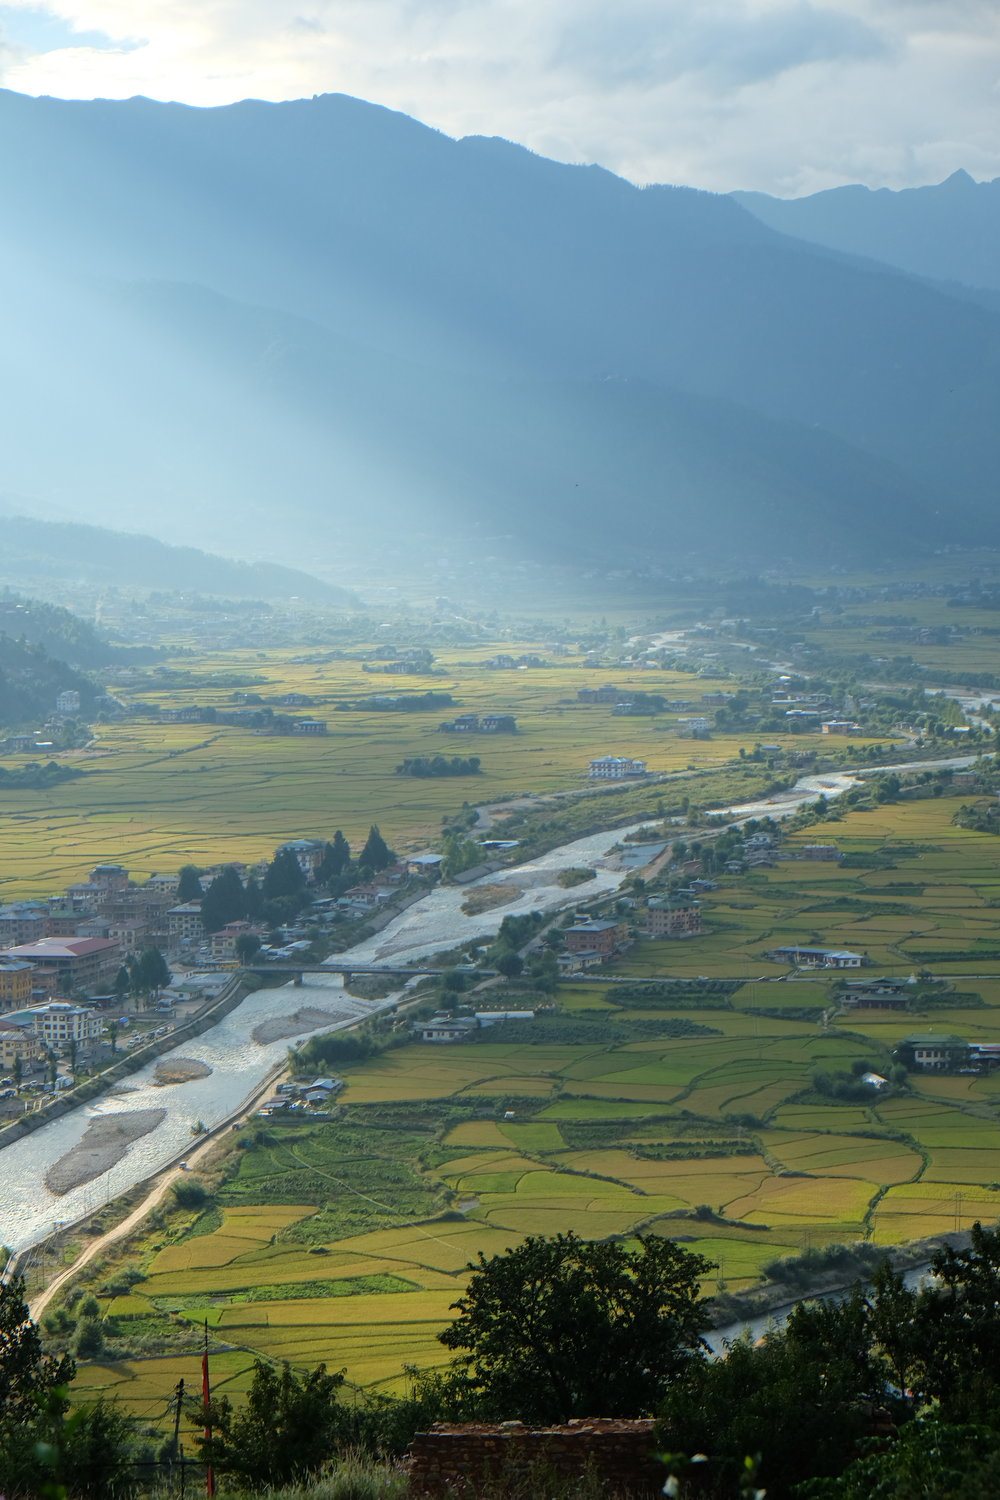 View of Paro from the National Museum